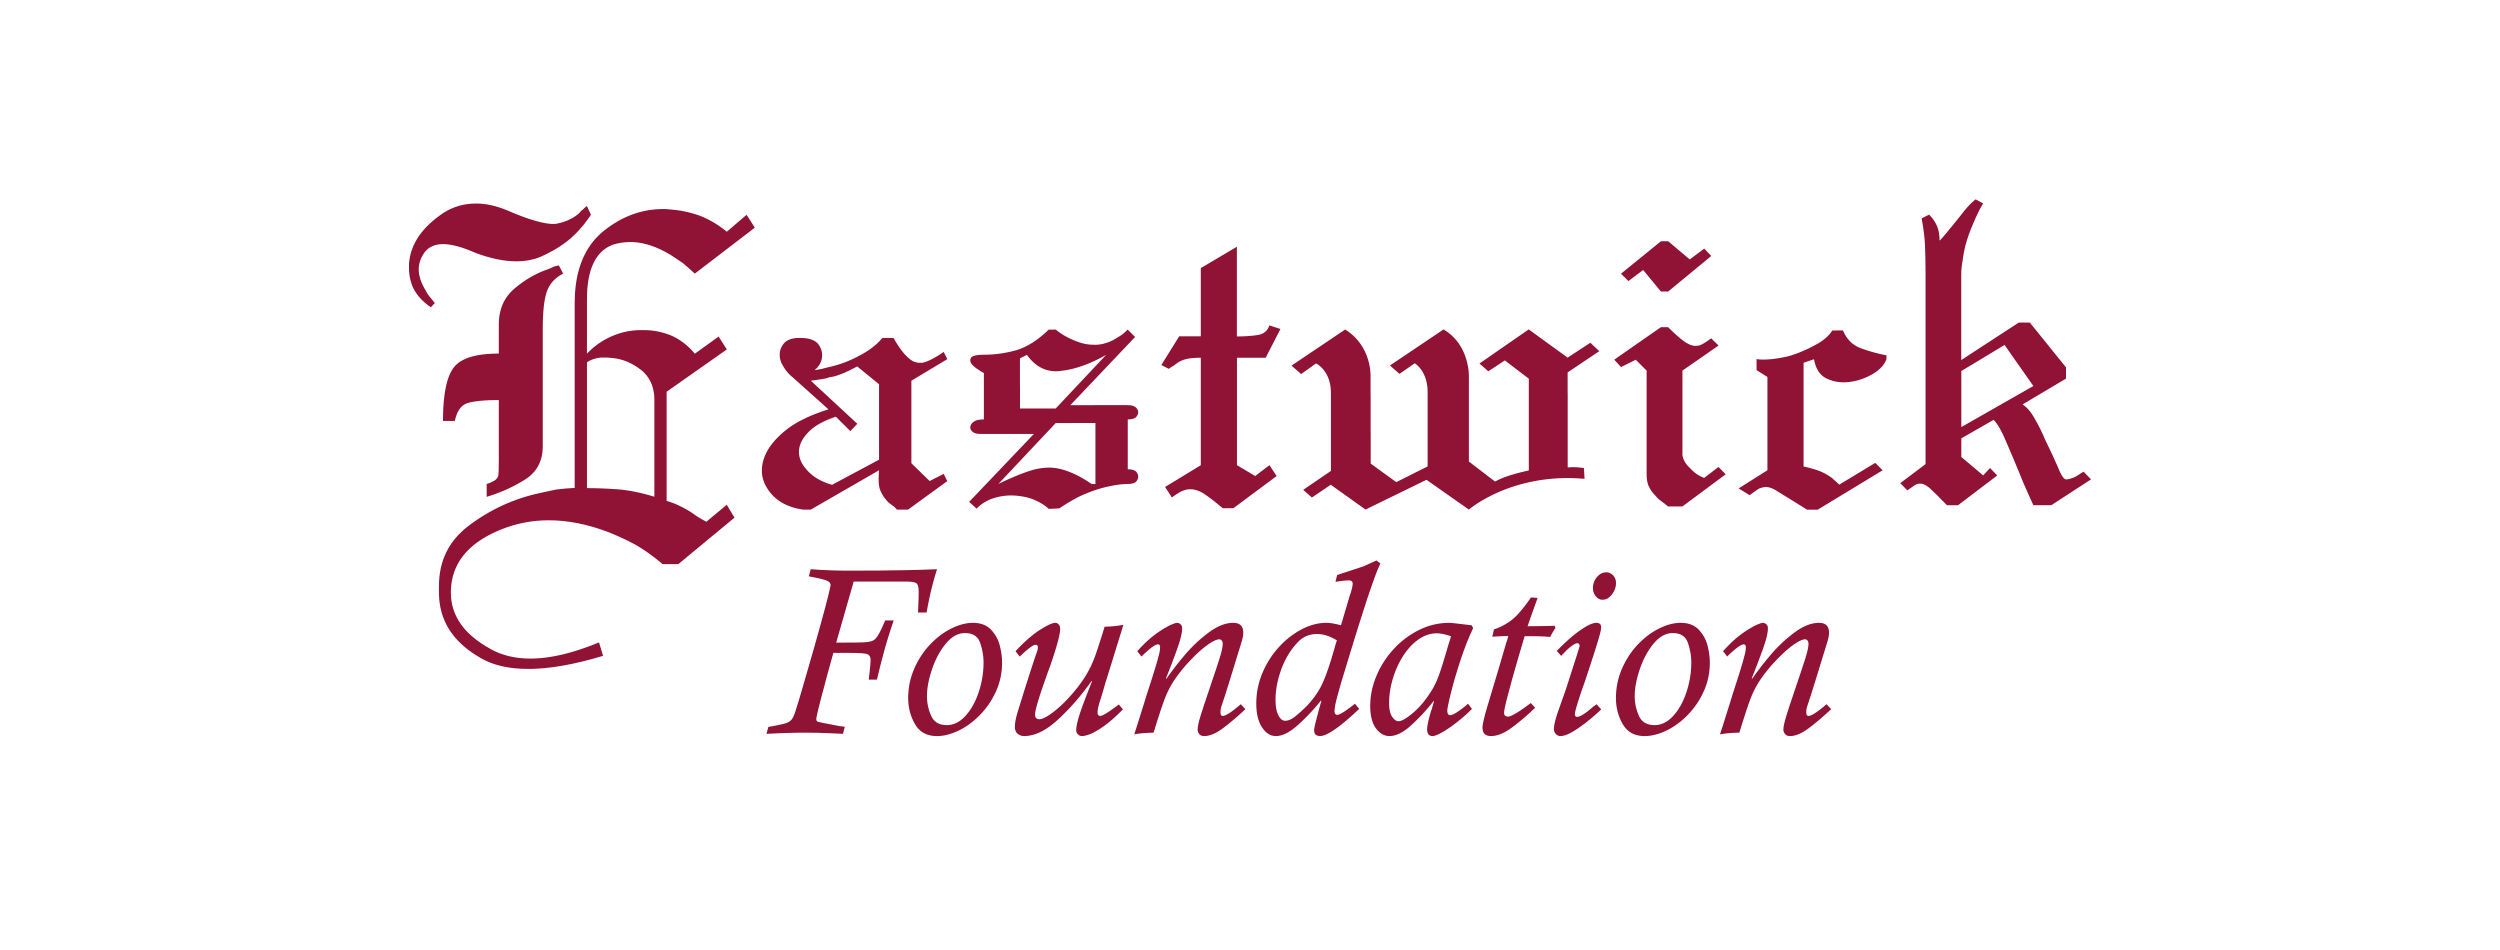 logo_eastwick_foundation_2017_v01.png